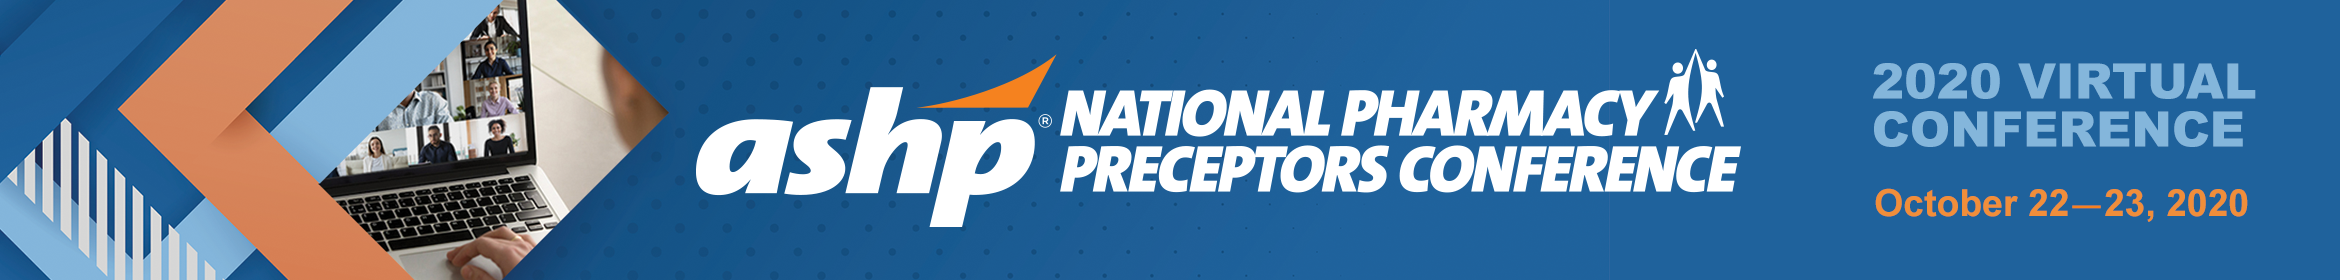 2020 National Pharmacy Preceptors Conference Main banner